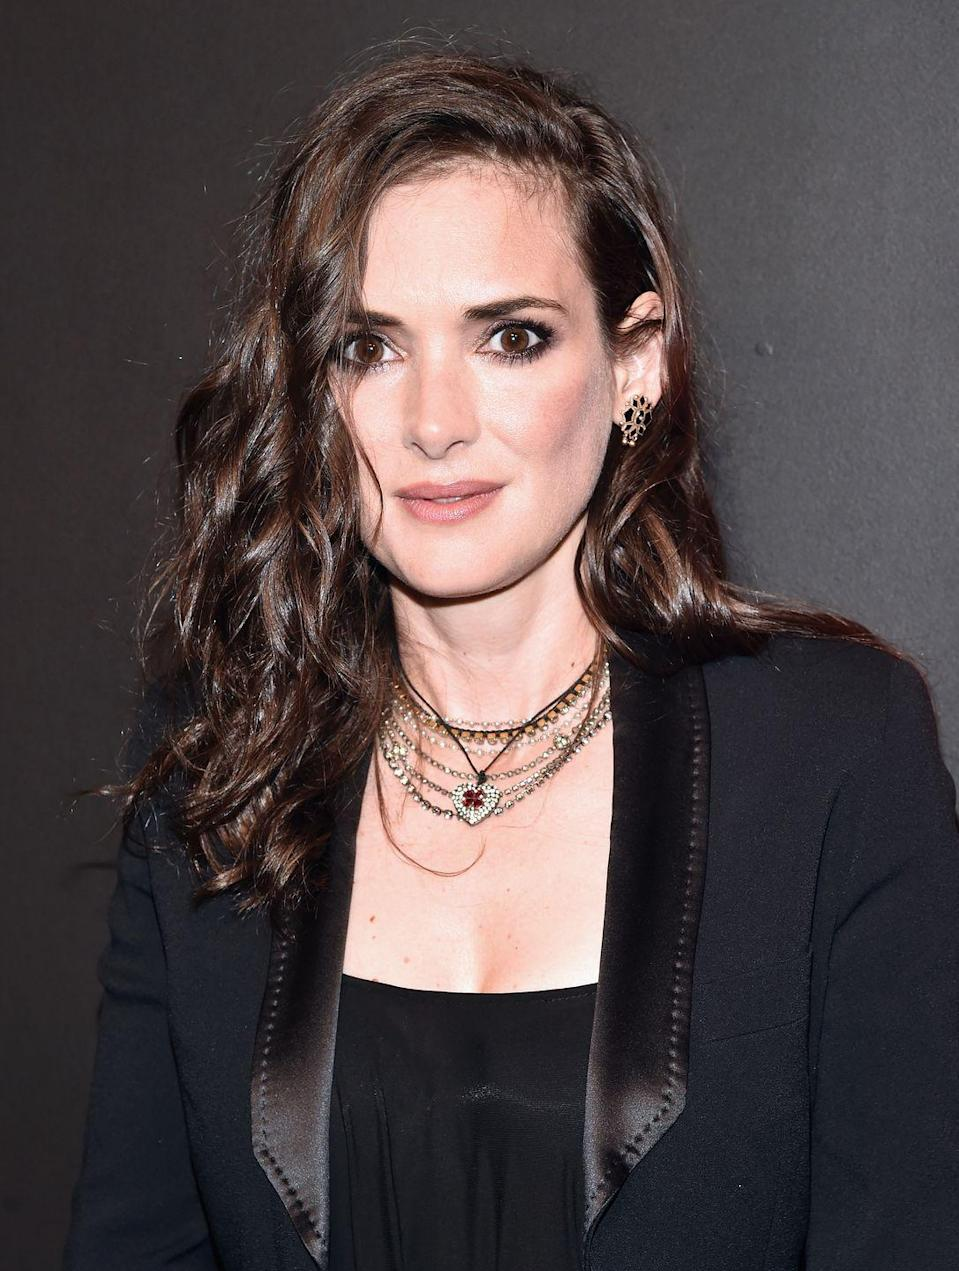 """<p><strong>Real name: </strong>Winona Laura Horowitz</p><p>Winona chose to go by Ryder on a whim. She was asked what name she'd like on the credits of her first role in film, and <a href=""""https://people.com/movies/celebrities-who-changed-their-names/?slide=5603476#5603476"""" rel=""""nofollow noopener"""" target=""""_blank"""" data-ylk=""""slk:Mitch Ryder's album was playing"""" class=""""link rapid-noclick-resp"""">Mitch Ryder's album was playing</a> in the background. So, she went with that!</p>"""